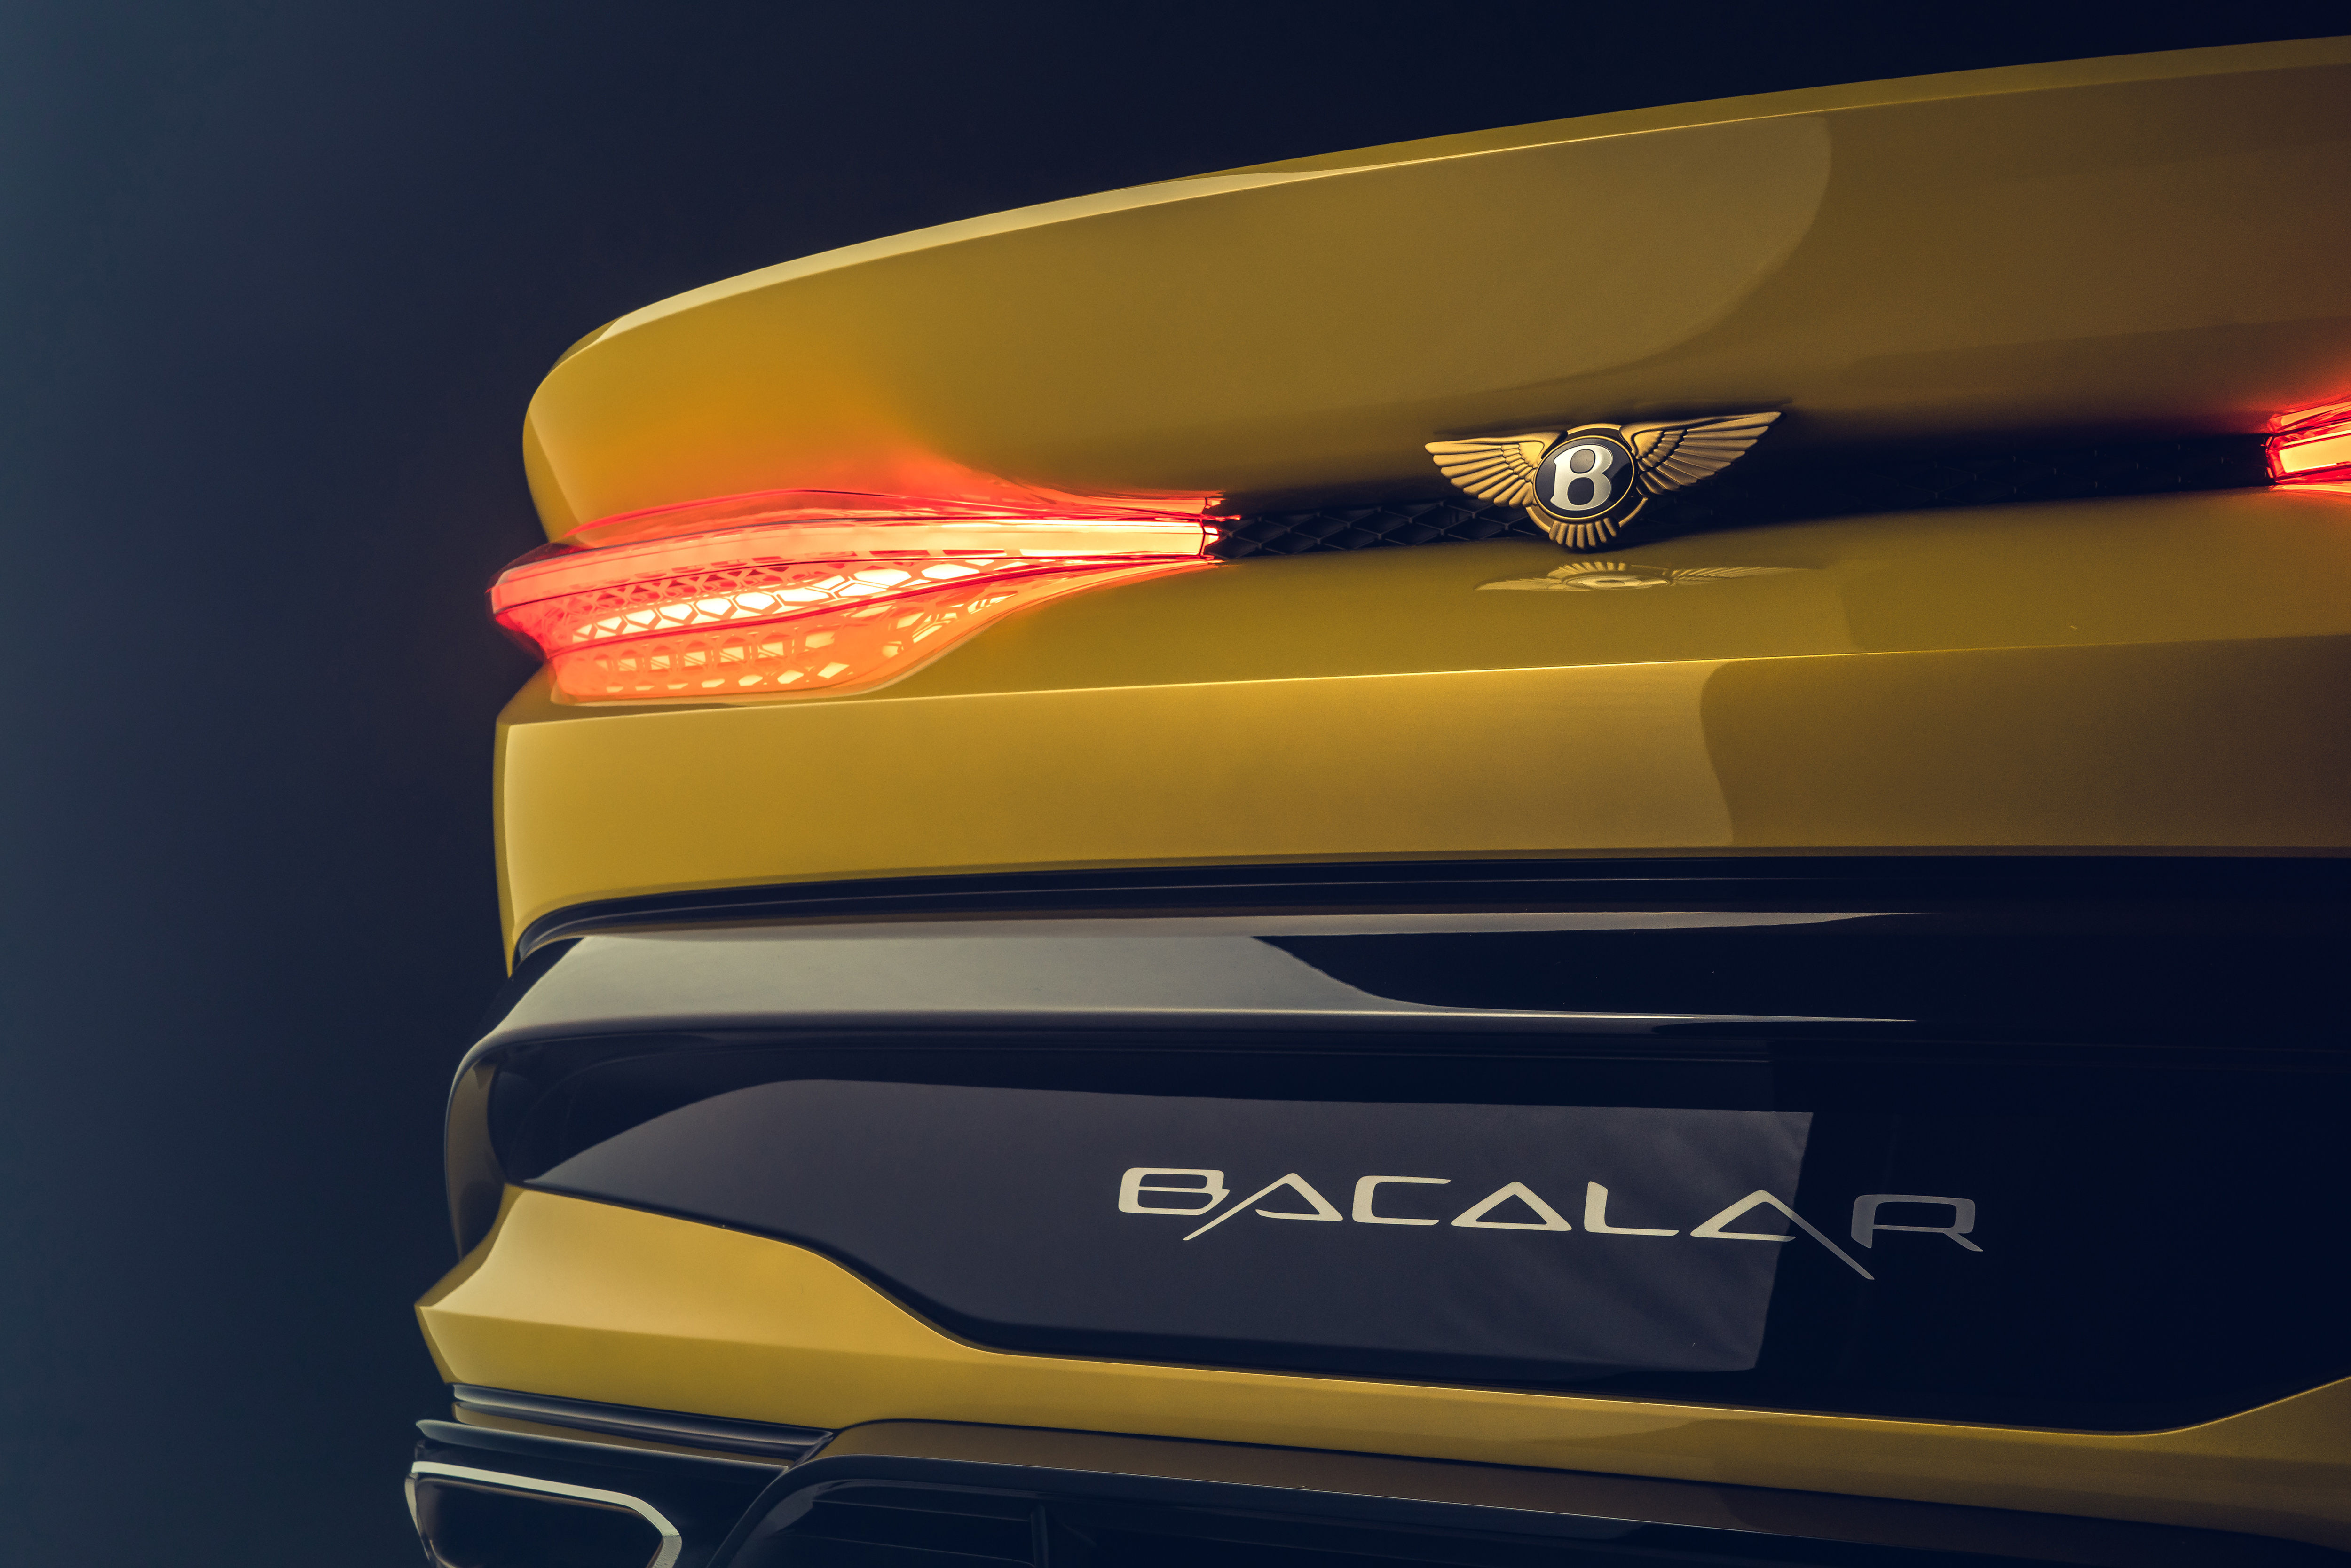 The exterior design of each model cab be customised in collaboration with each client, who can further personalise their car by choosing from various paint options, exterior treatments and design themes.